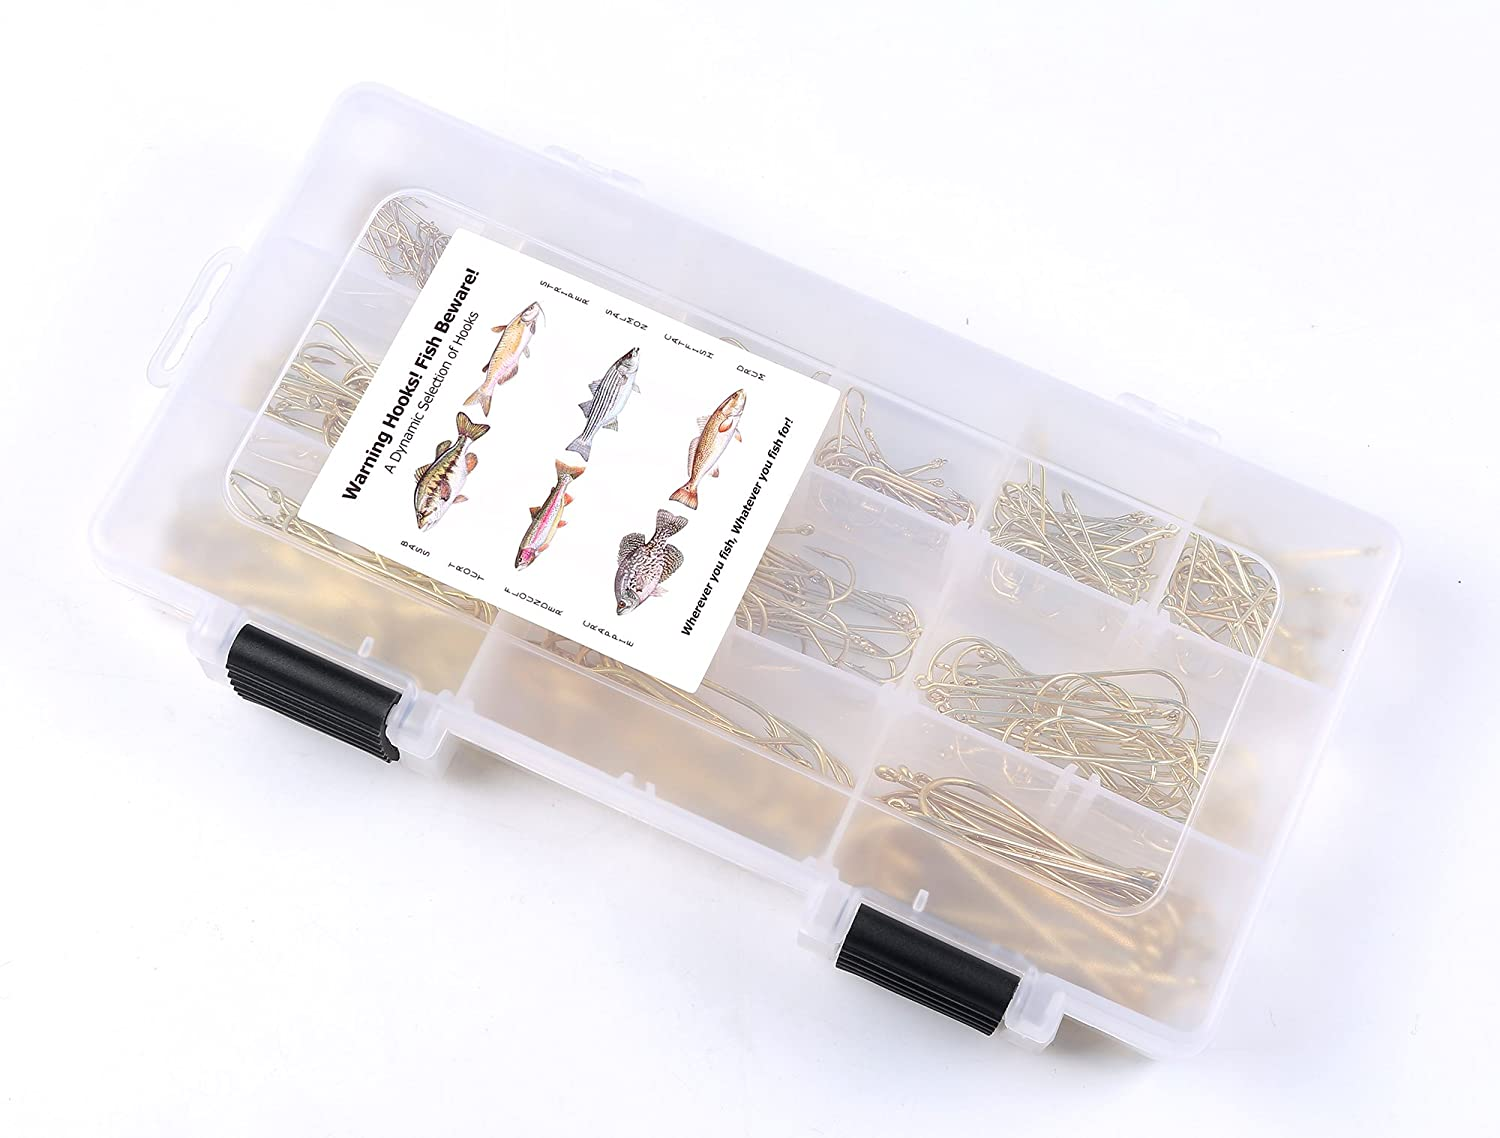 Thorn Fishing Aberdeen Hooks Assortment Kit 300-Pieces with Fishing Tackle Box